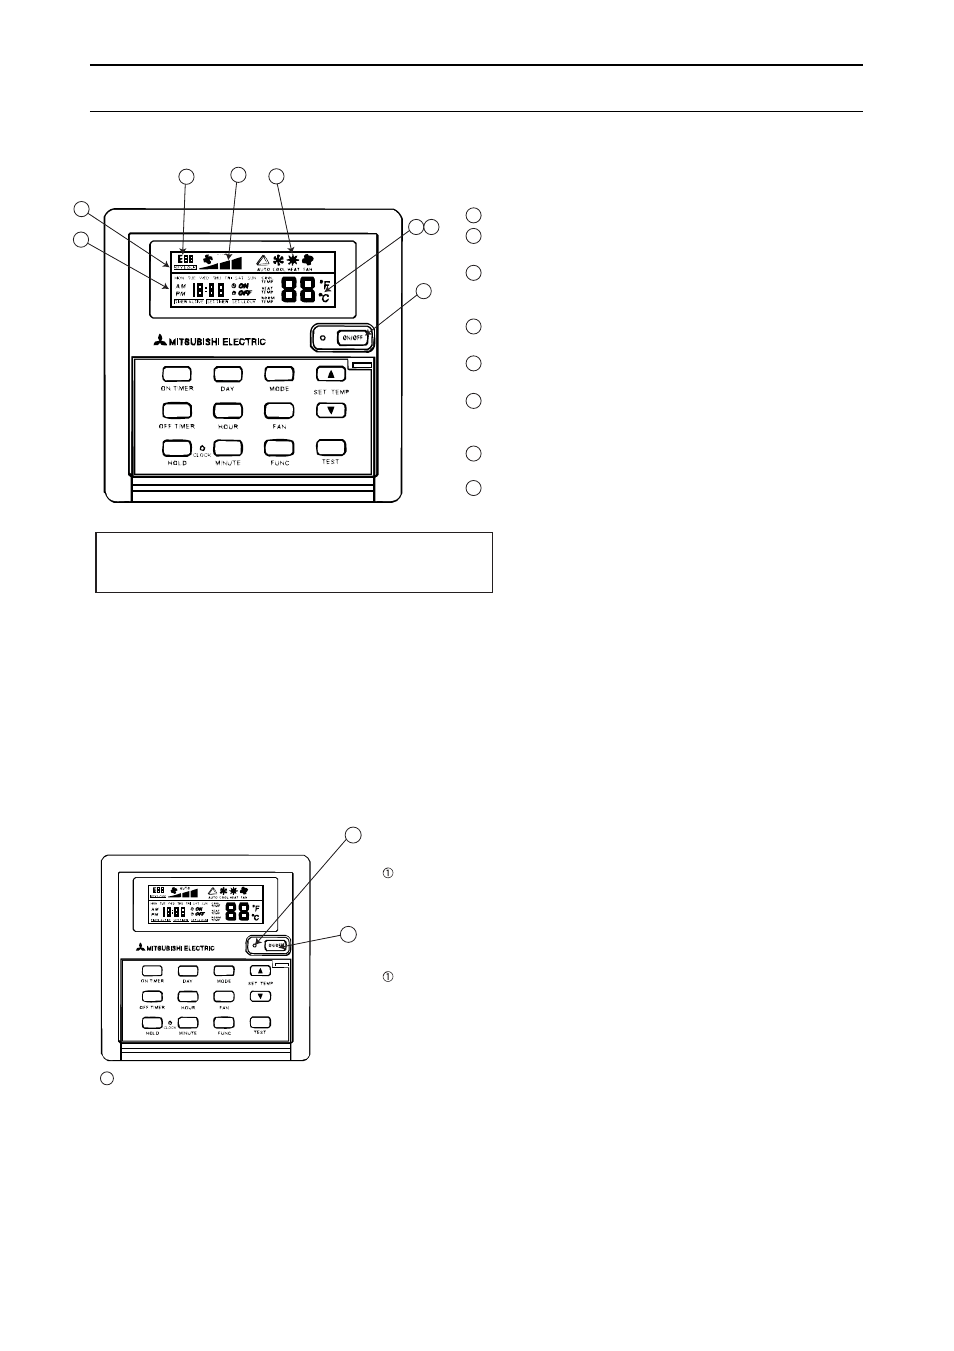 medium resolution of how to operate option pac 204rc warning 1 on off mitsubishi electric pe 15myc user manual page 109 115